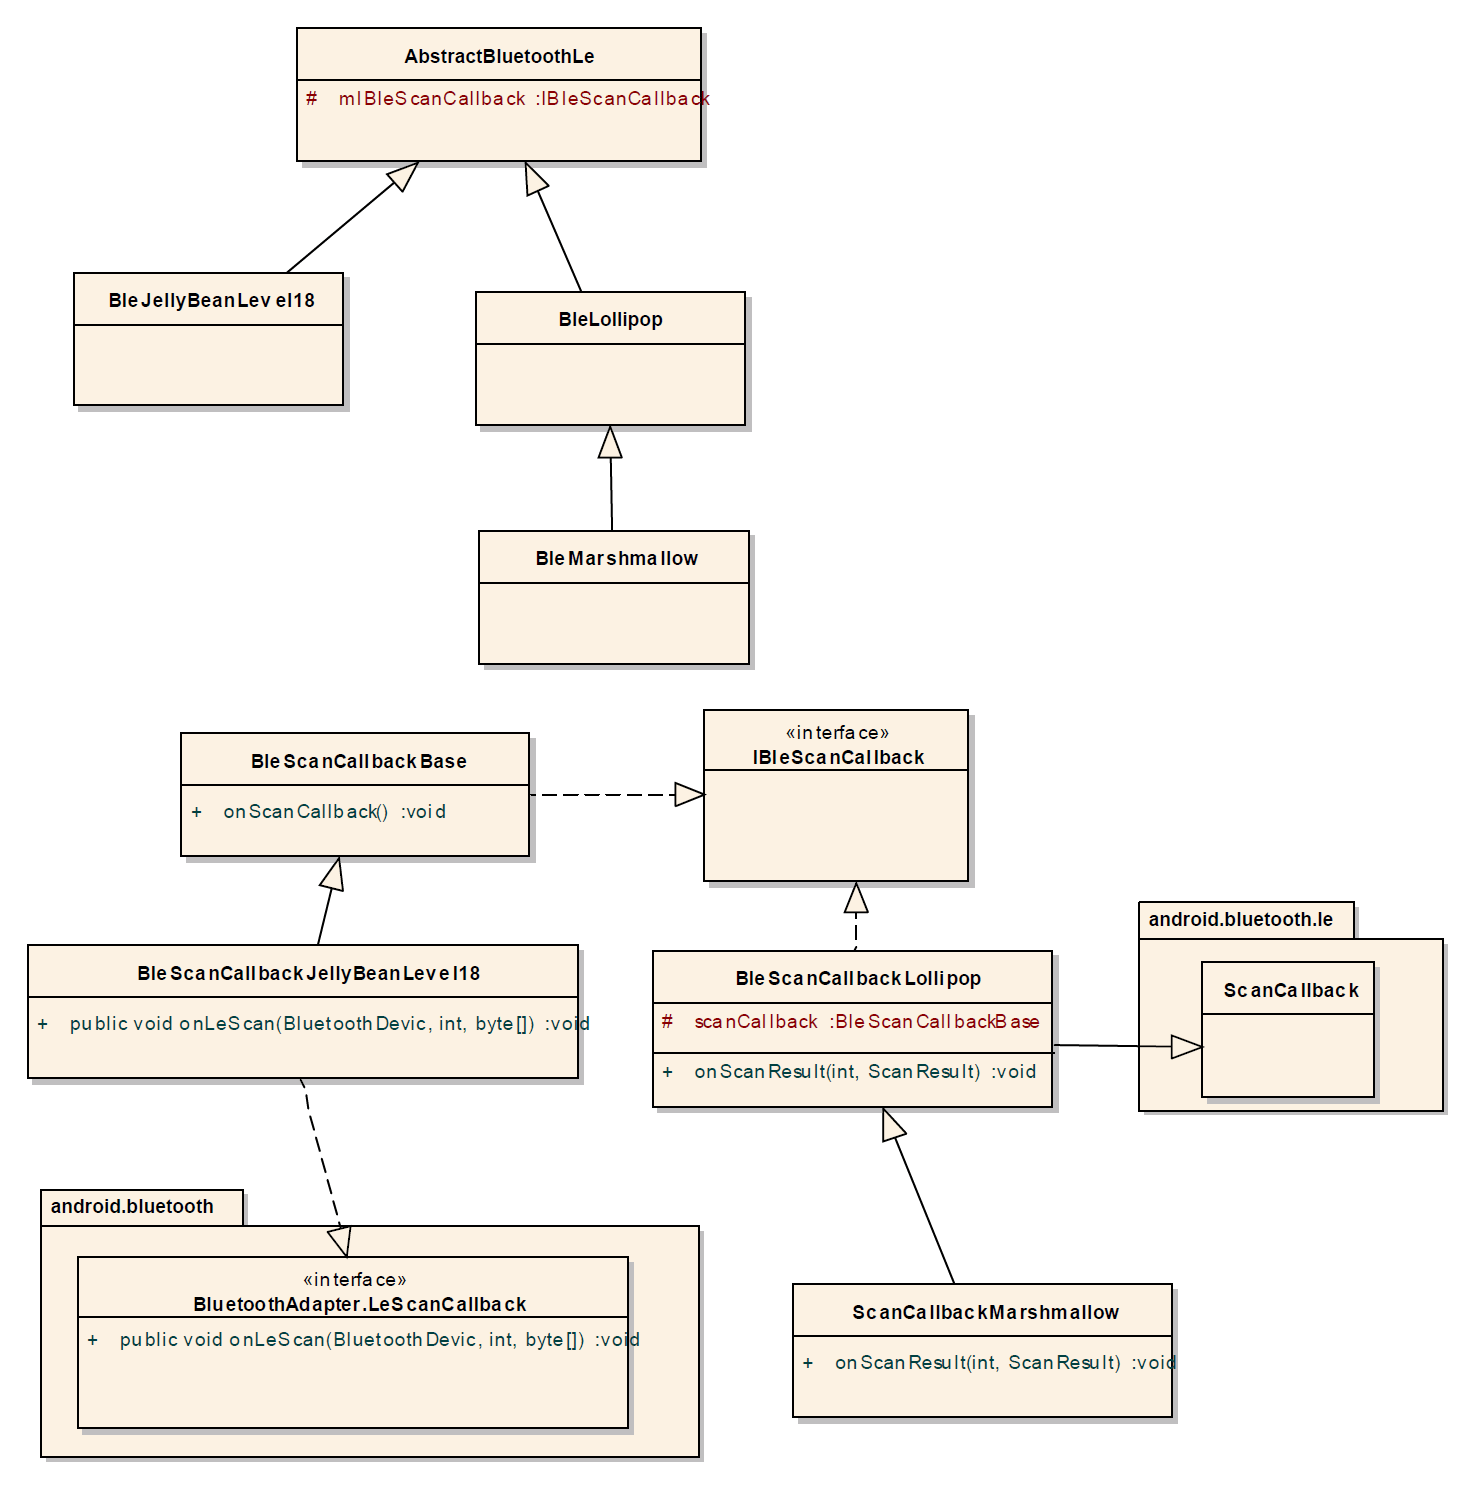 bluetooth application stack diagram using a venn to compare and contrast android low energy code compatible with api gt21